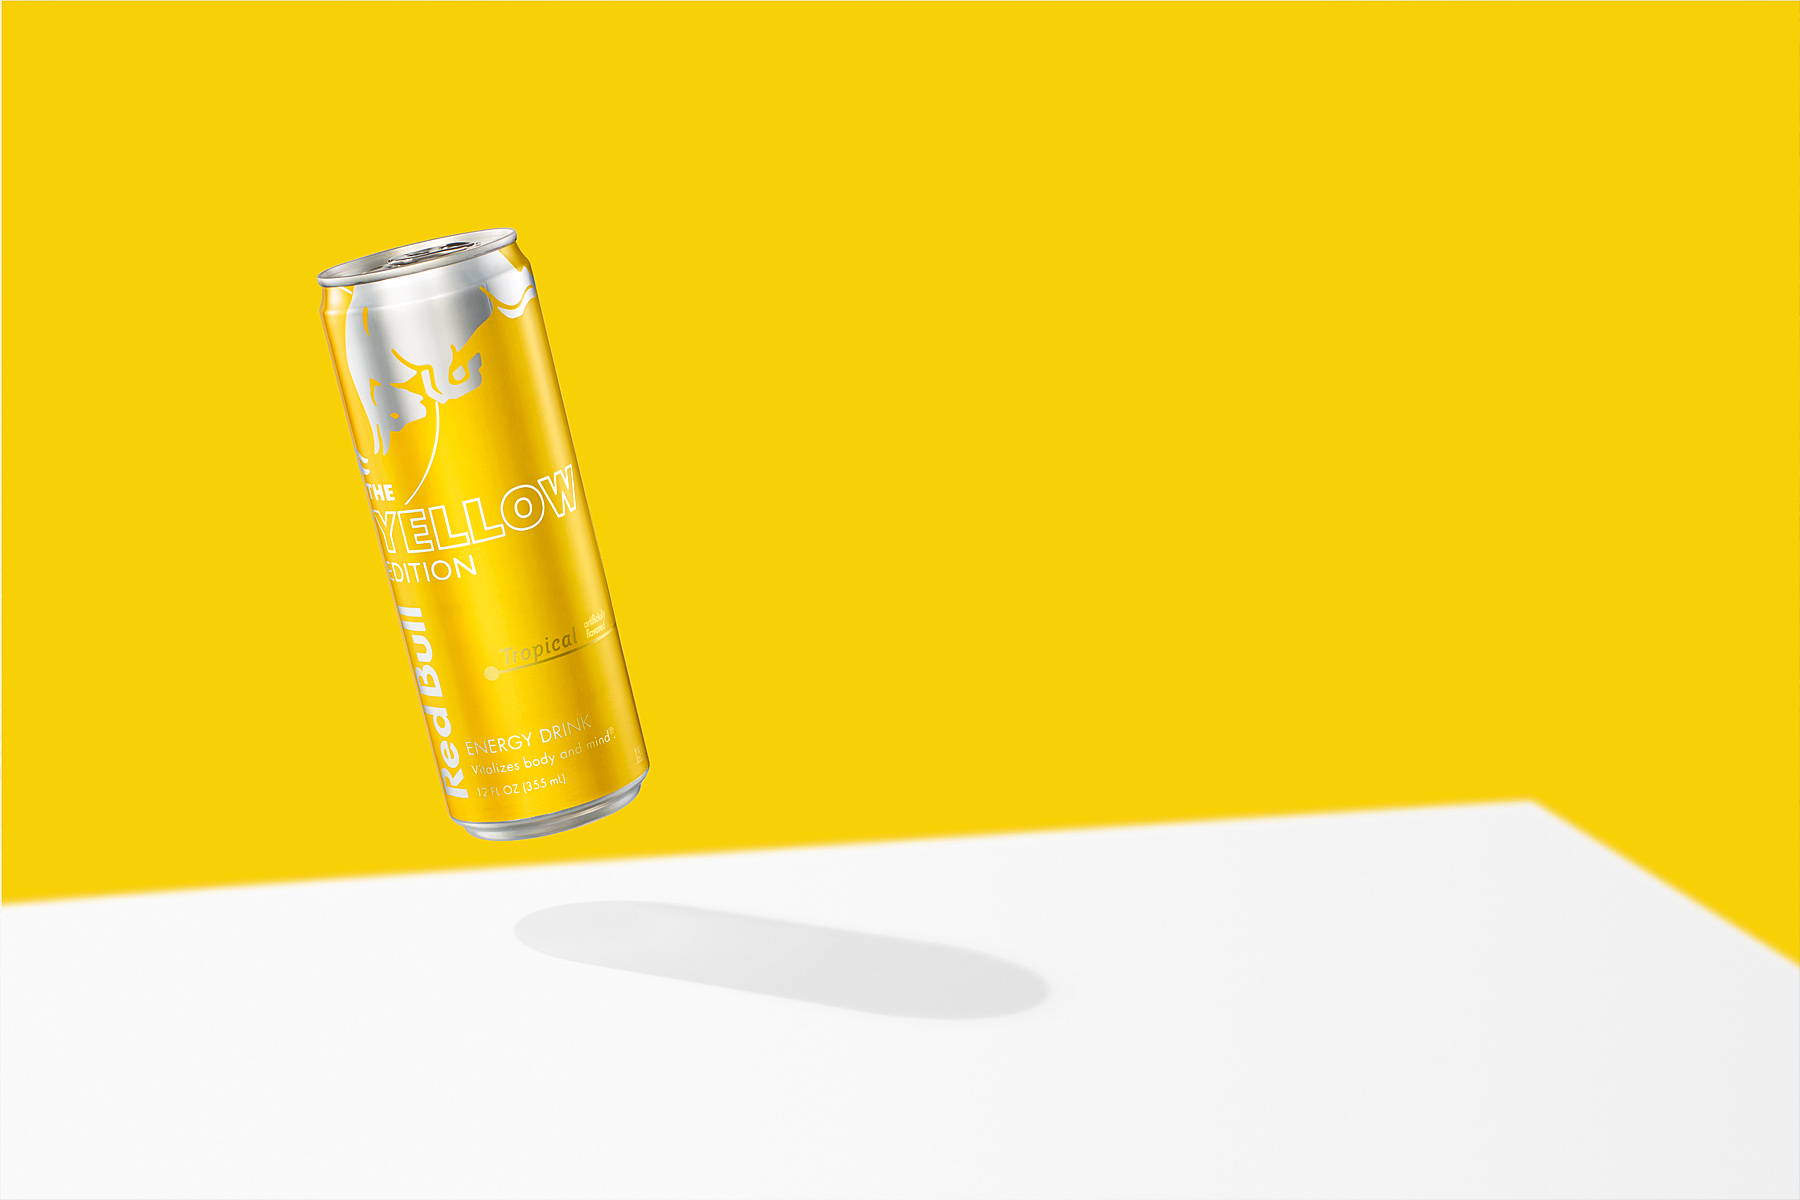 RED_BULL_YELLOW